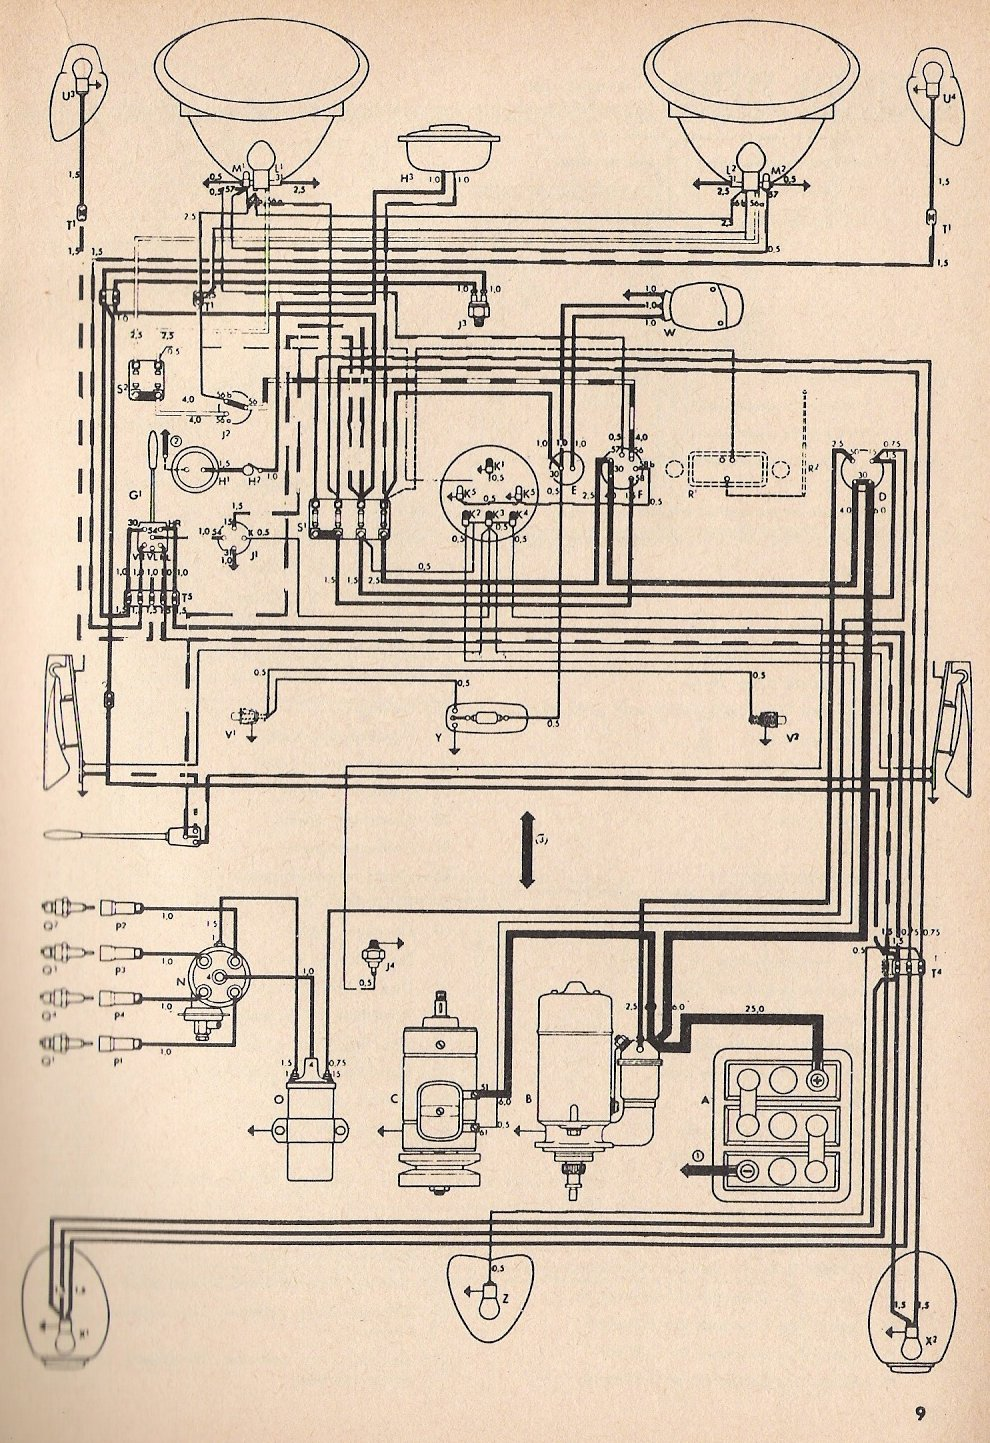 5 Wire Relay Wiring Diagram Gm Seville Auto Electrical 1972 Vw Steering Column Harness 38